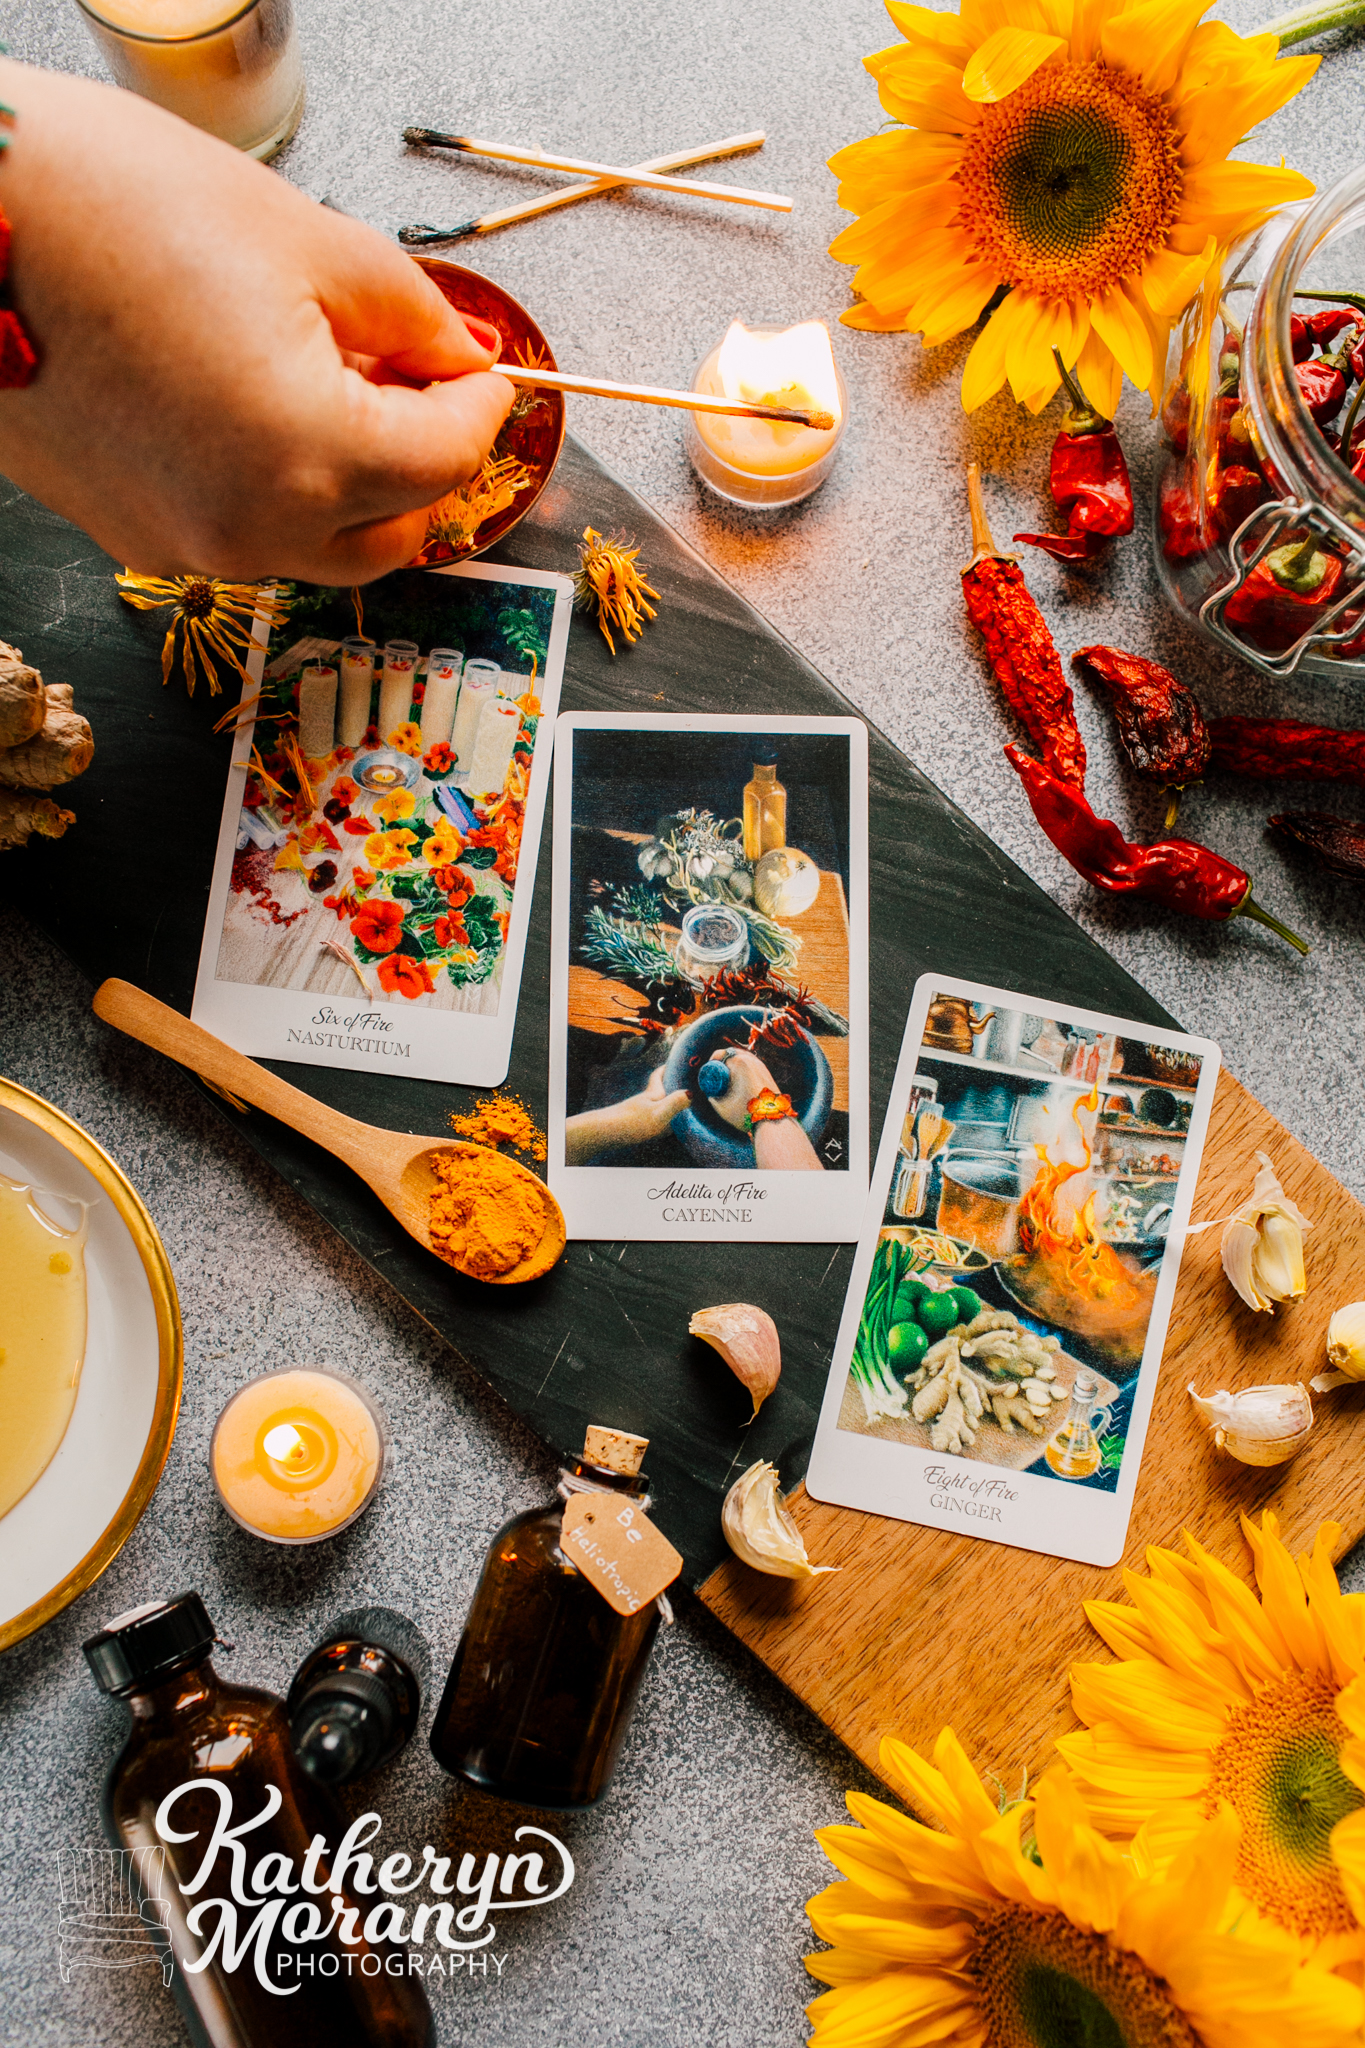 Bellingham Business Photographer, Product Styling, Katheryn Moran Photography, Harbcrafters Tarot